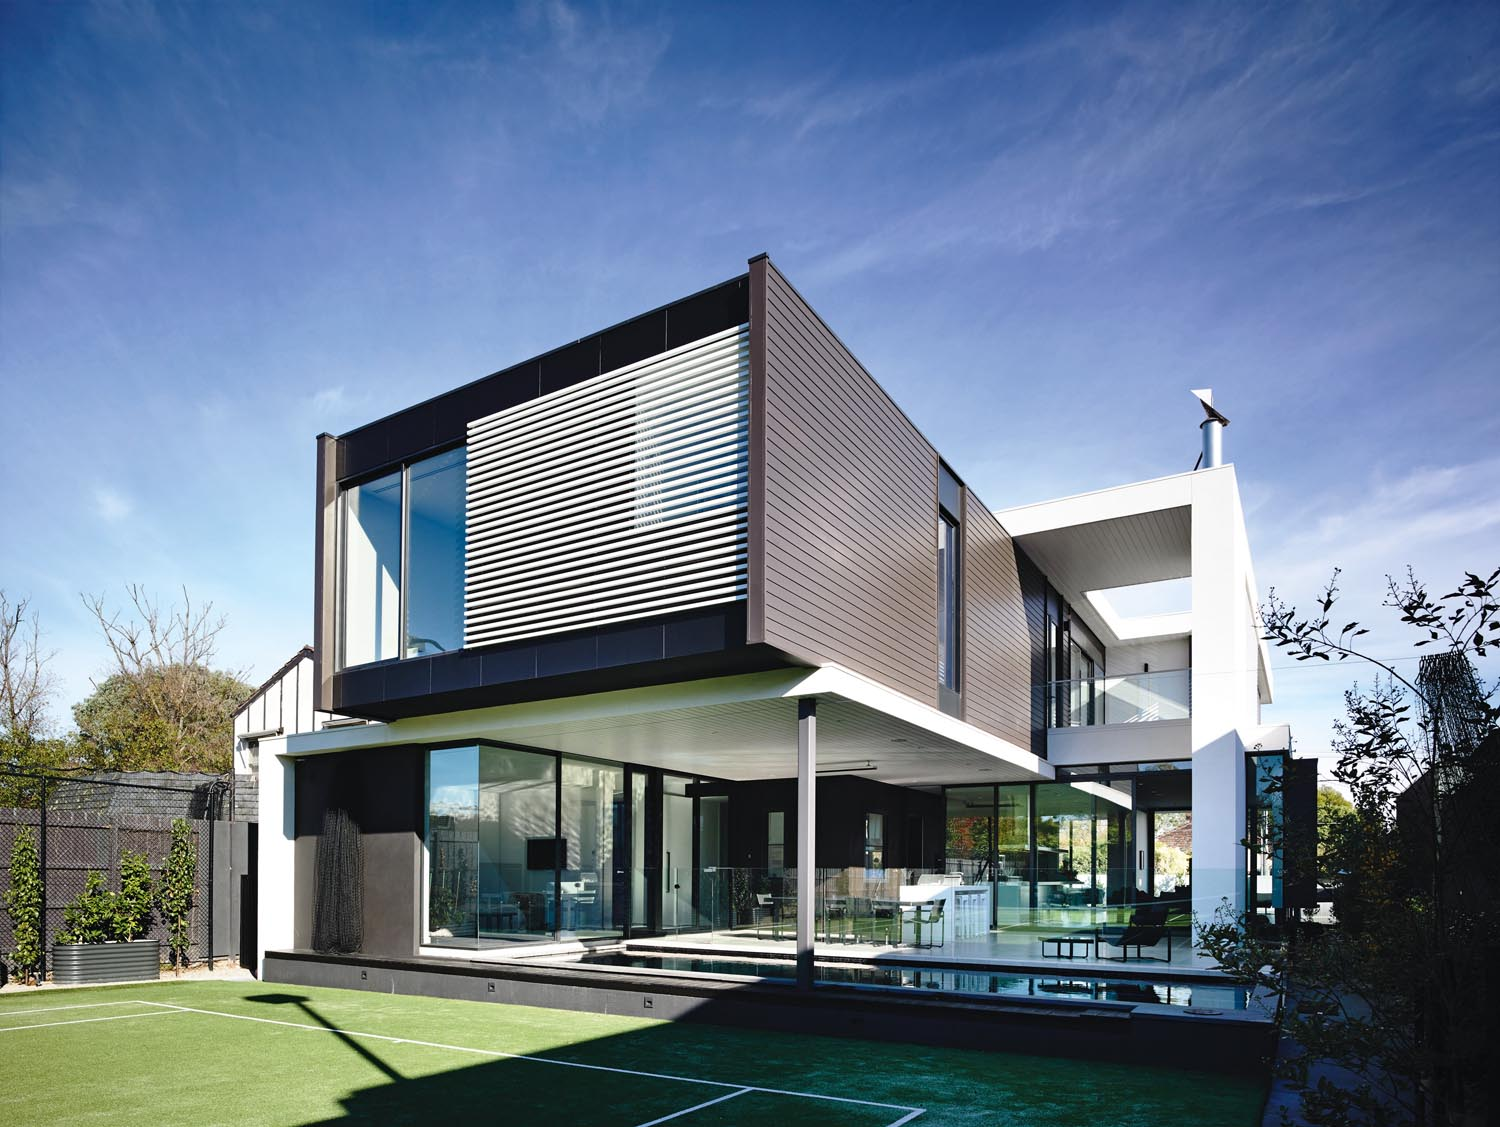 Grand designs australia south melbourne statement for Grand home designs